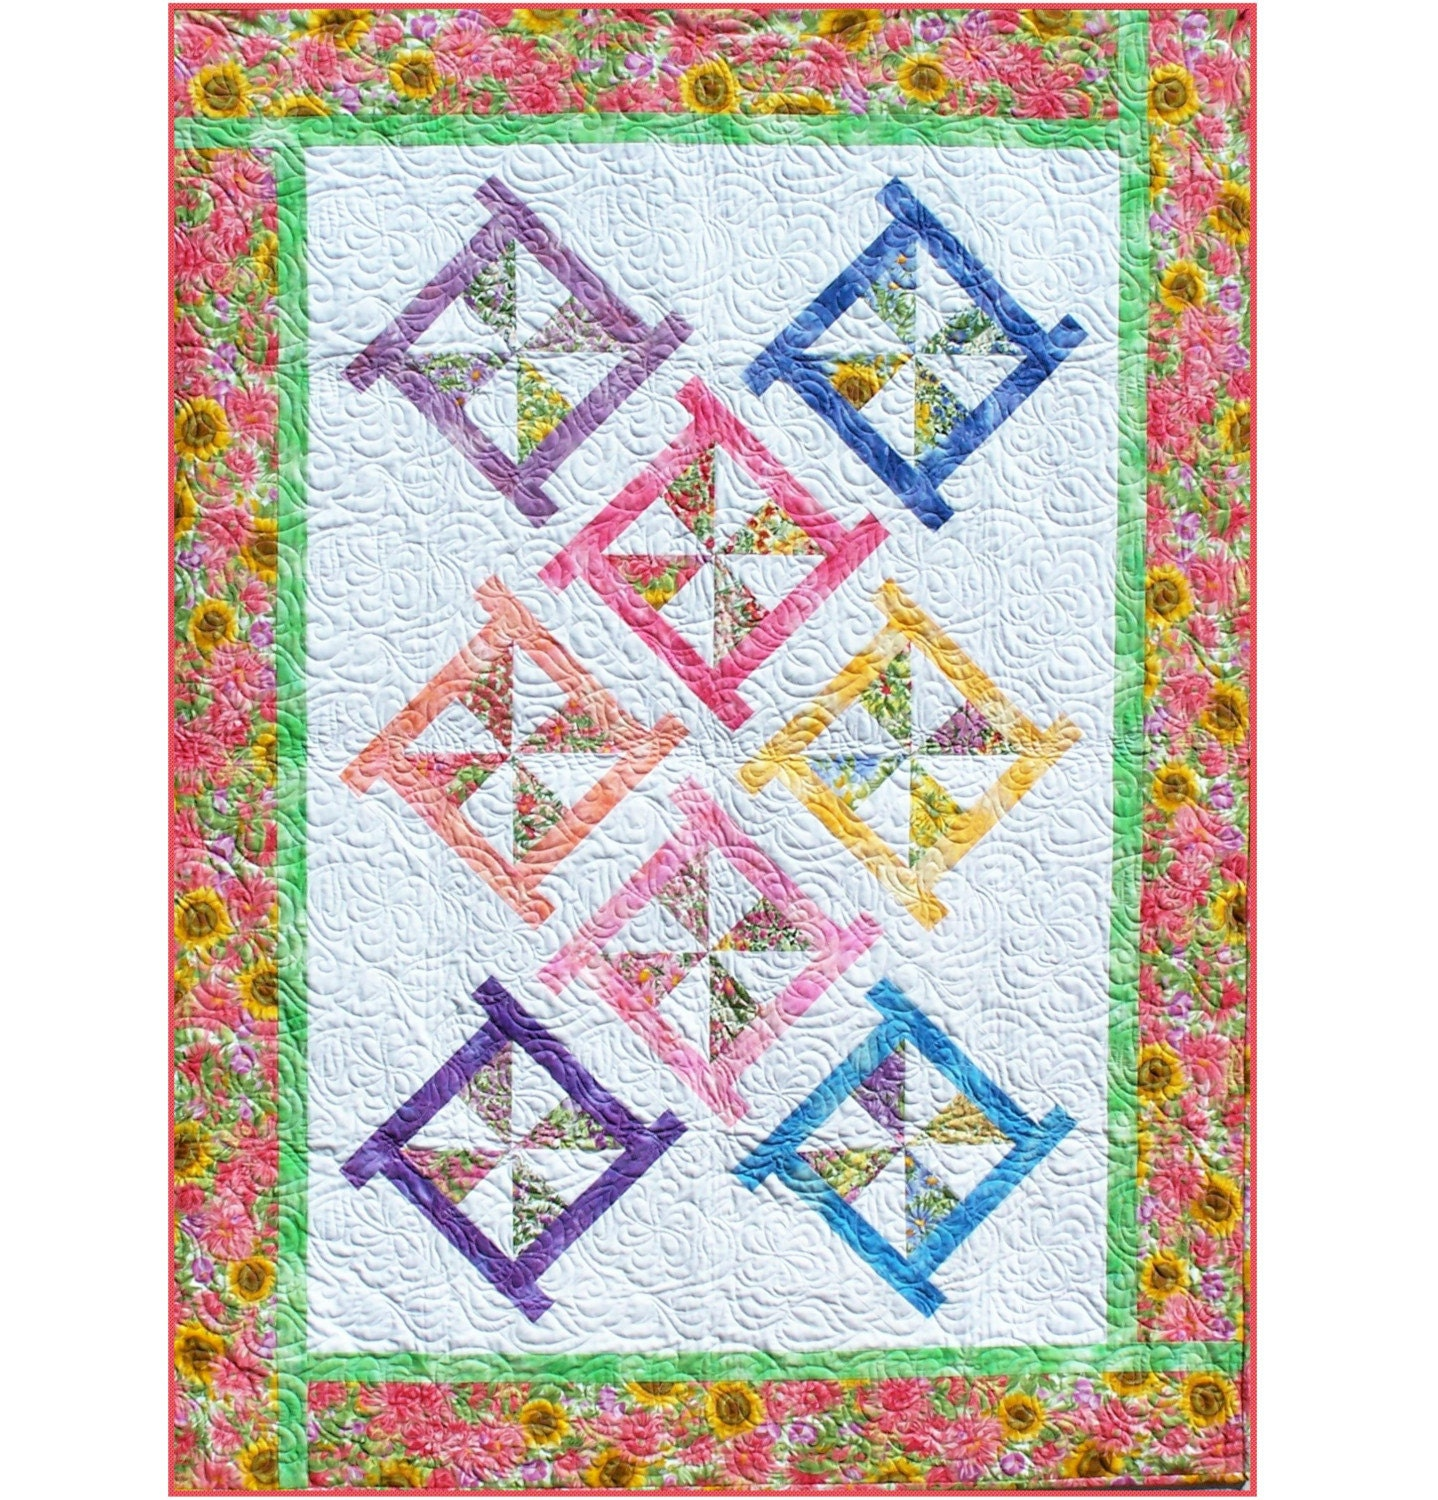 Priceless image in printable quilt